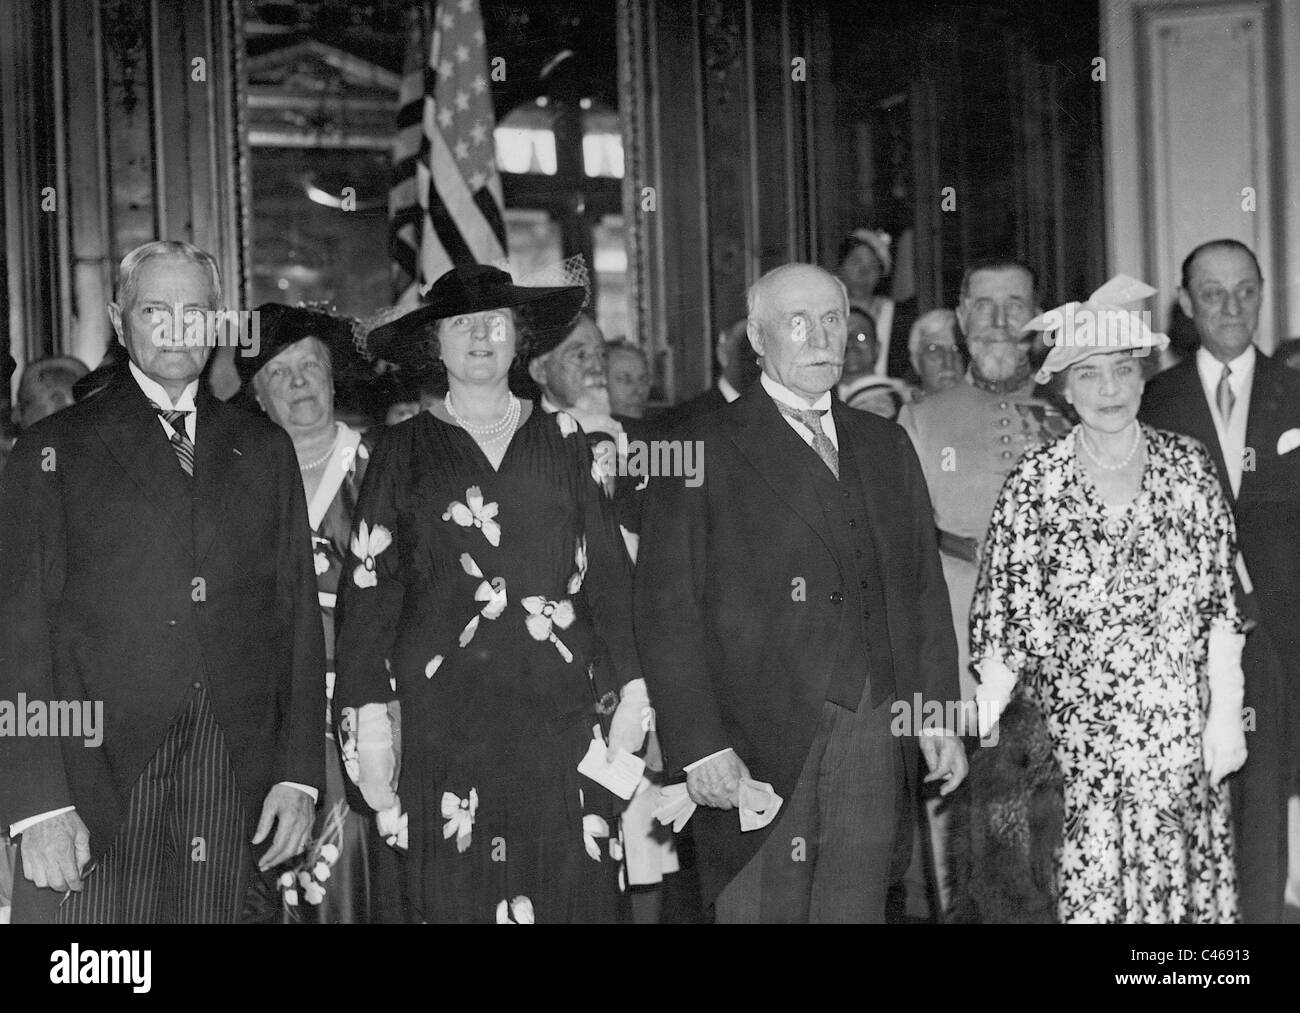 Shot of the Princess Margaret Boncompagni in the French Legion of Honor, 1935 - Stock Image